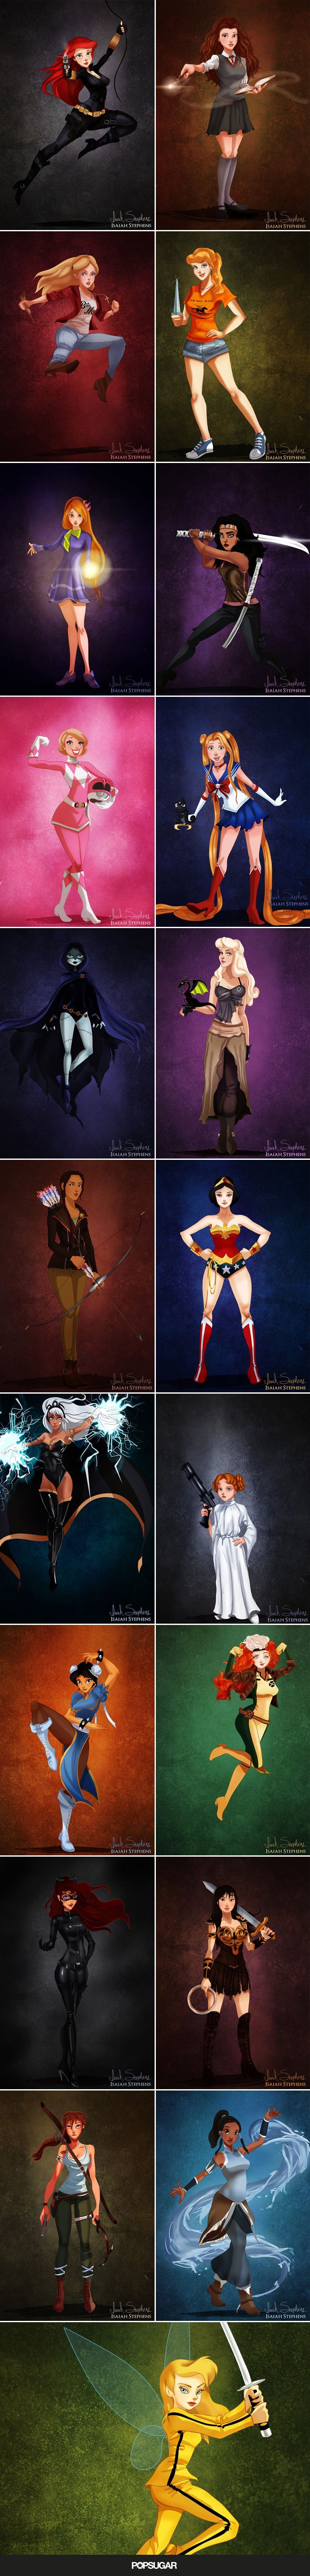 See Disney characters dressed in Halloween costumes. Ariel as Black Widow. Alice as Buffy!! Awesome!!